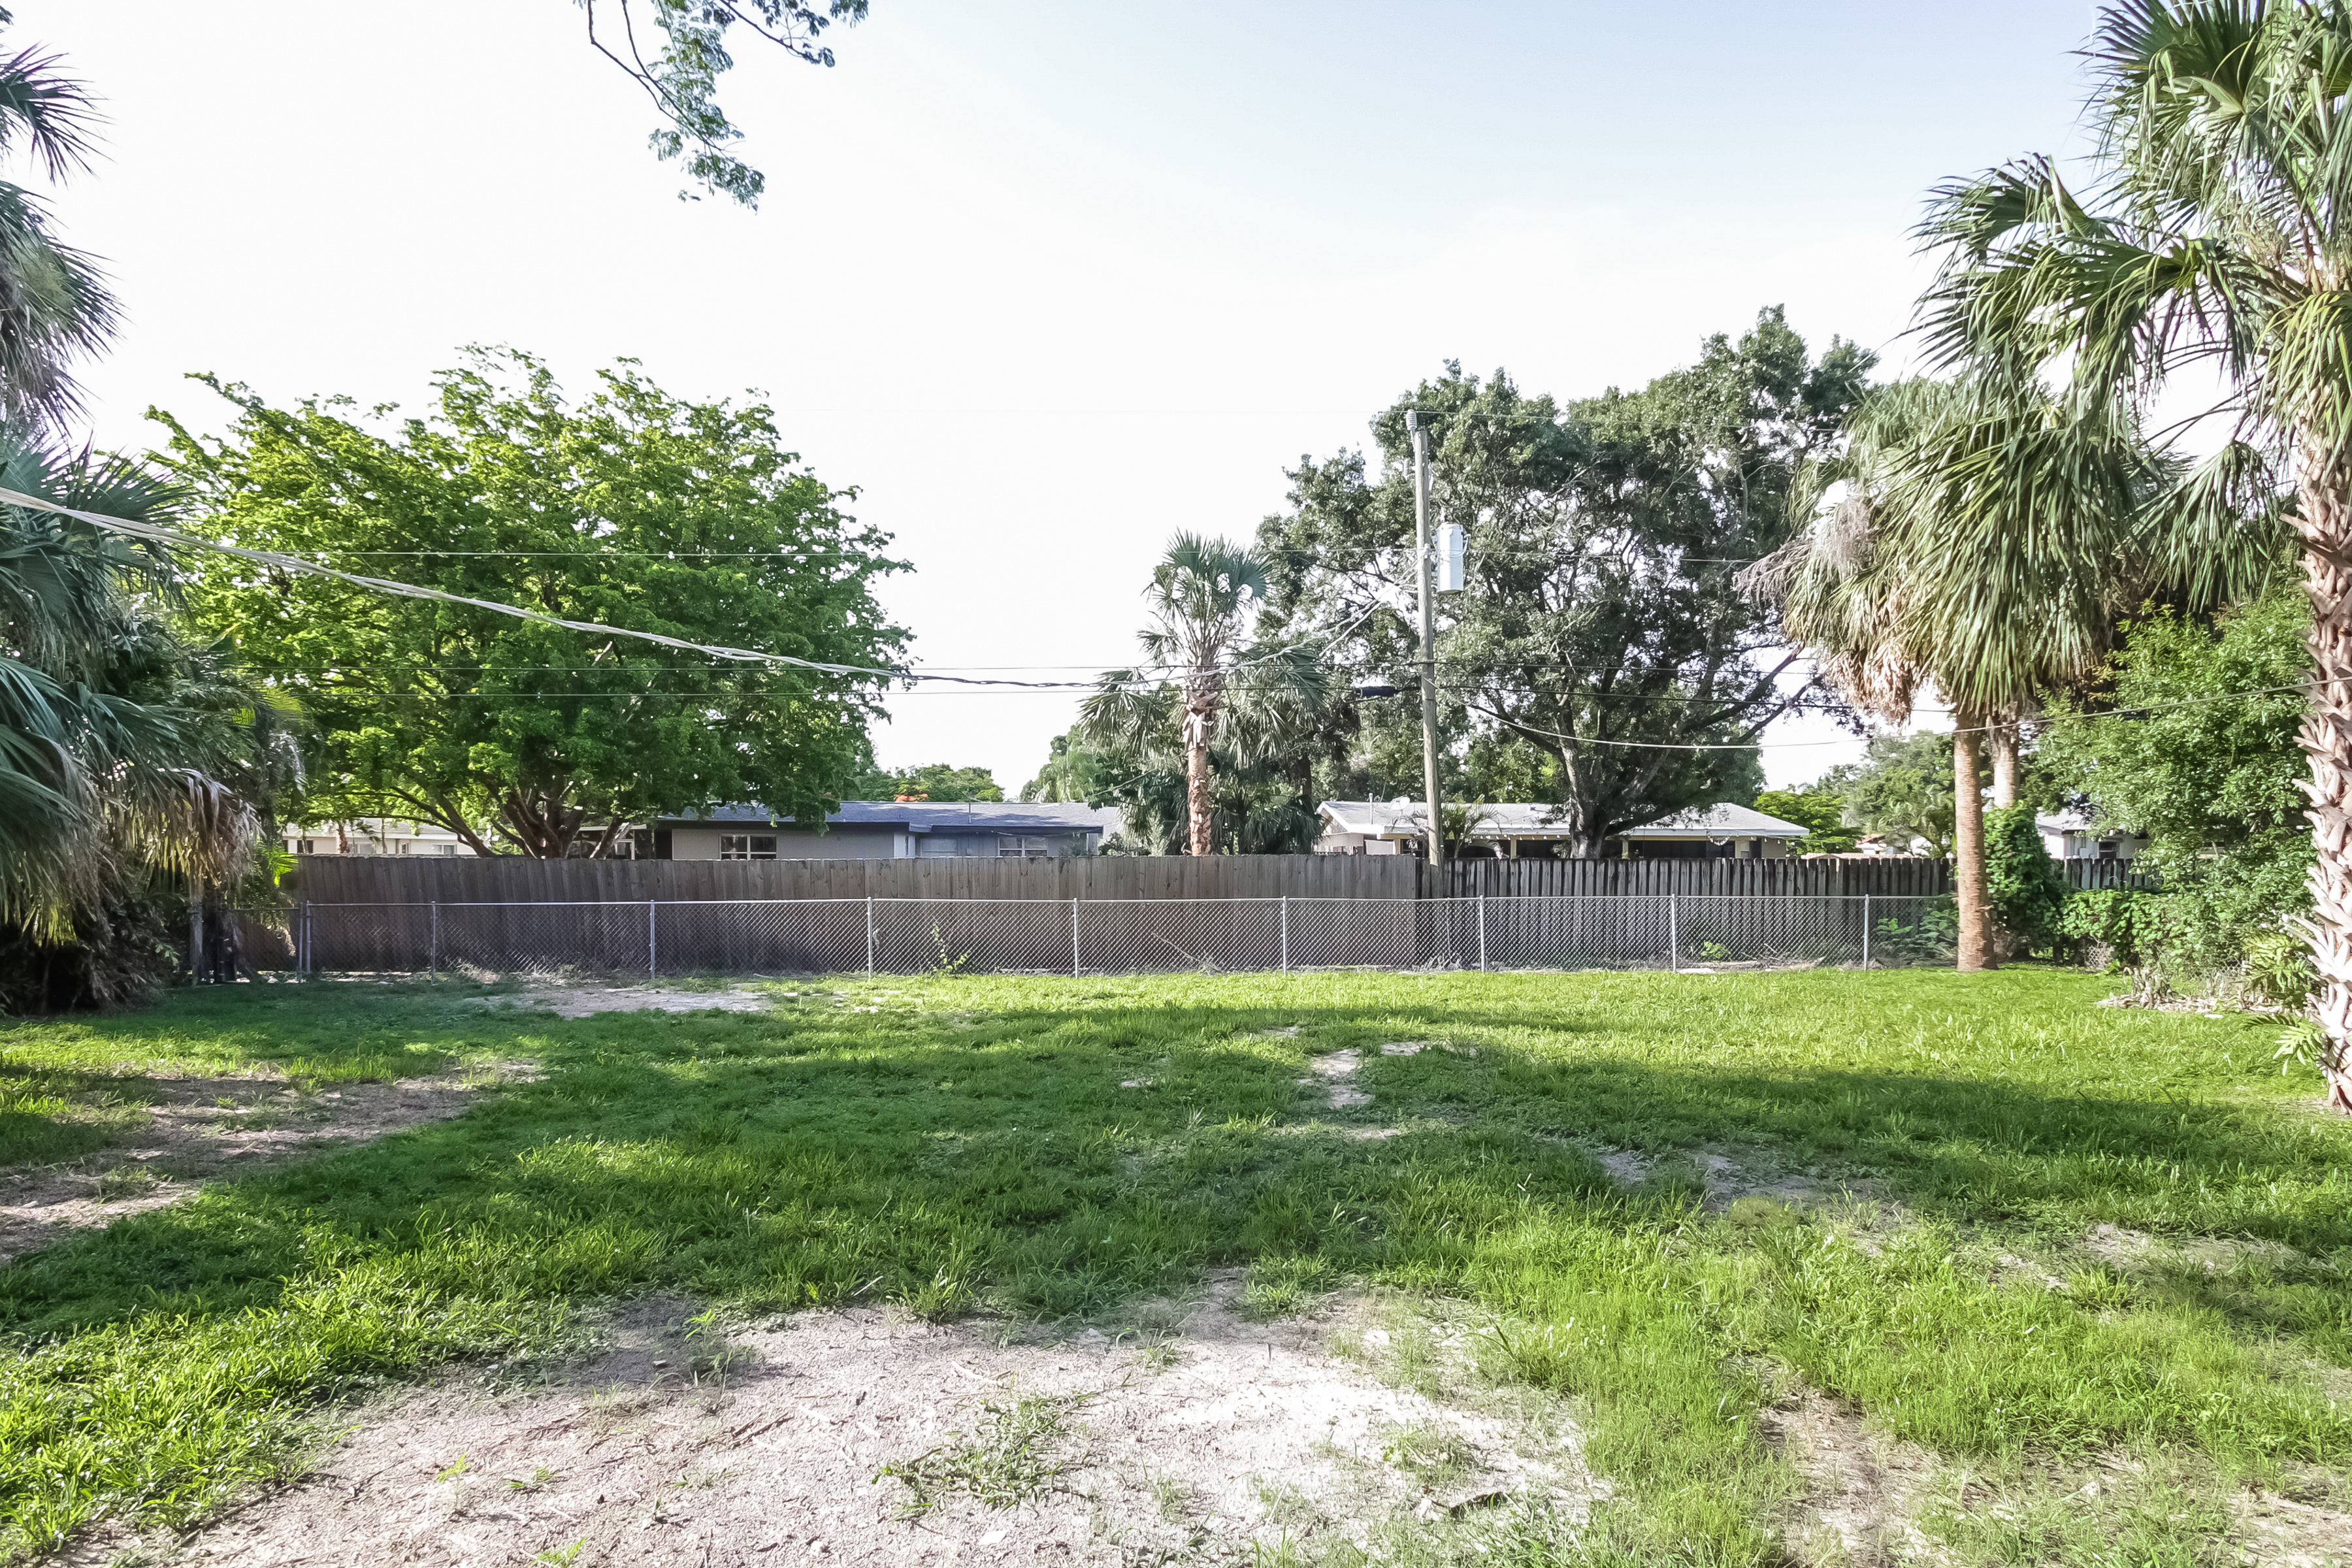 Photo of 1357 Burtwood Dr, Fort Myers, FL, 33901